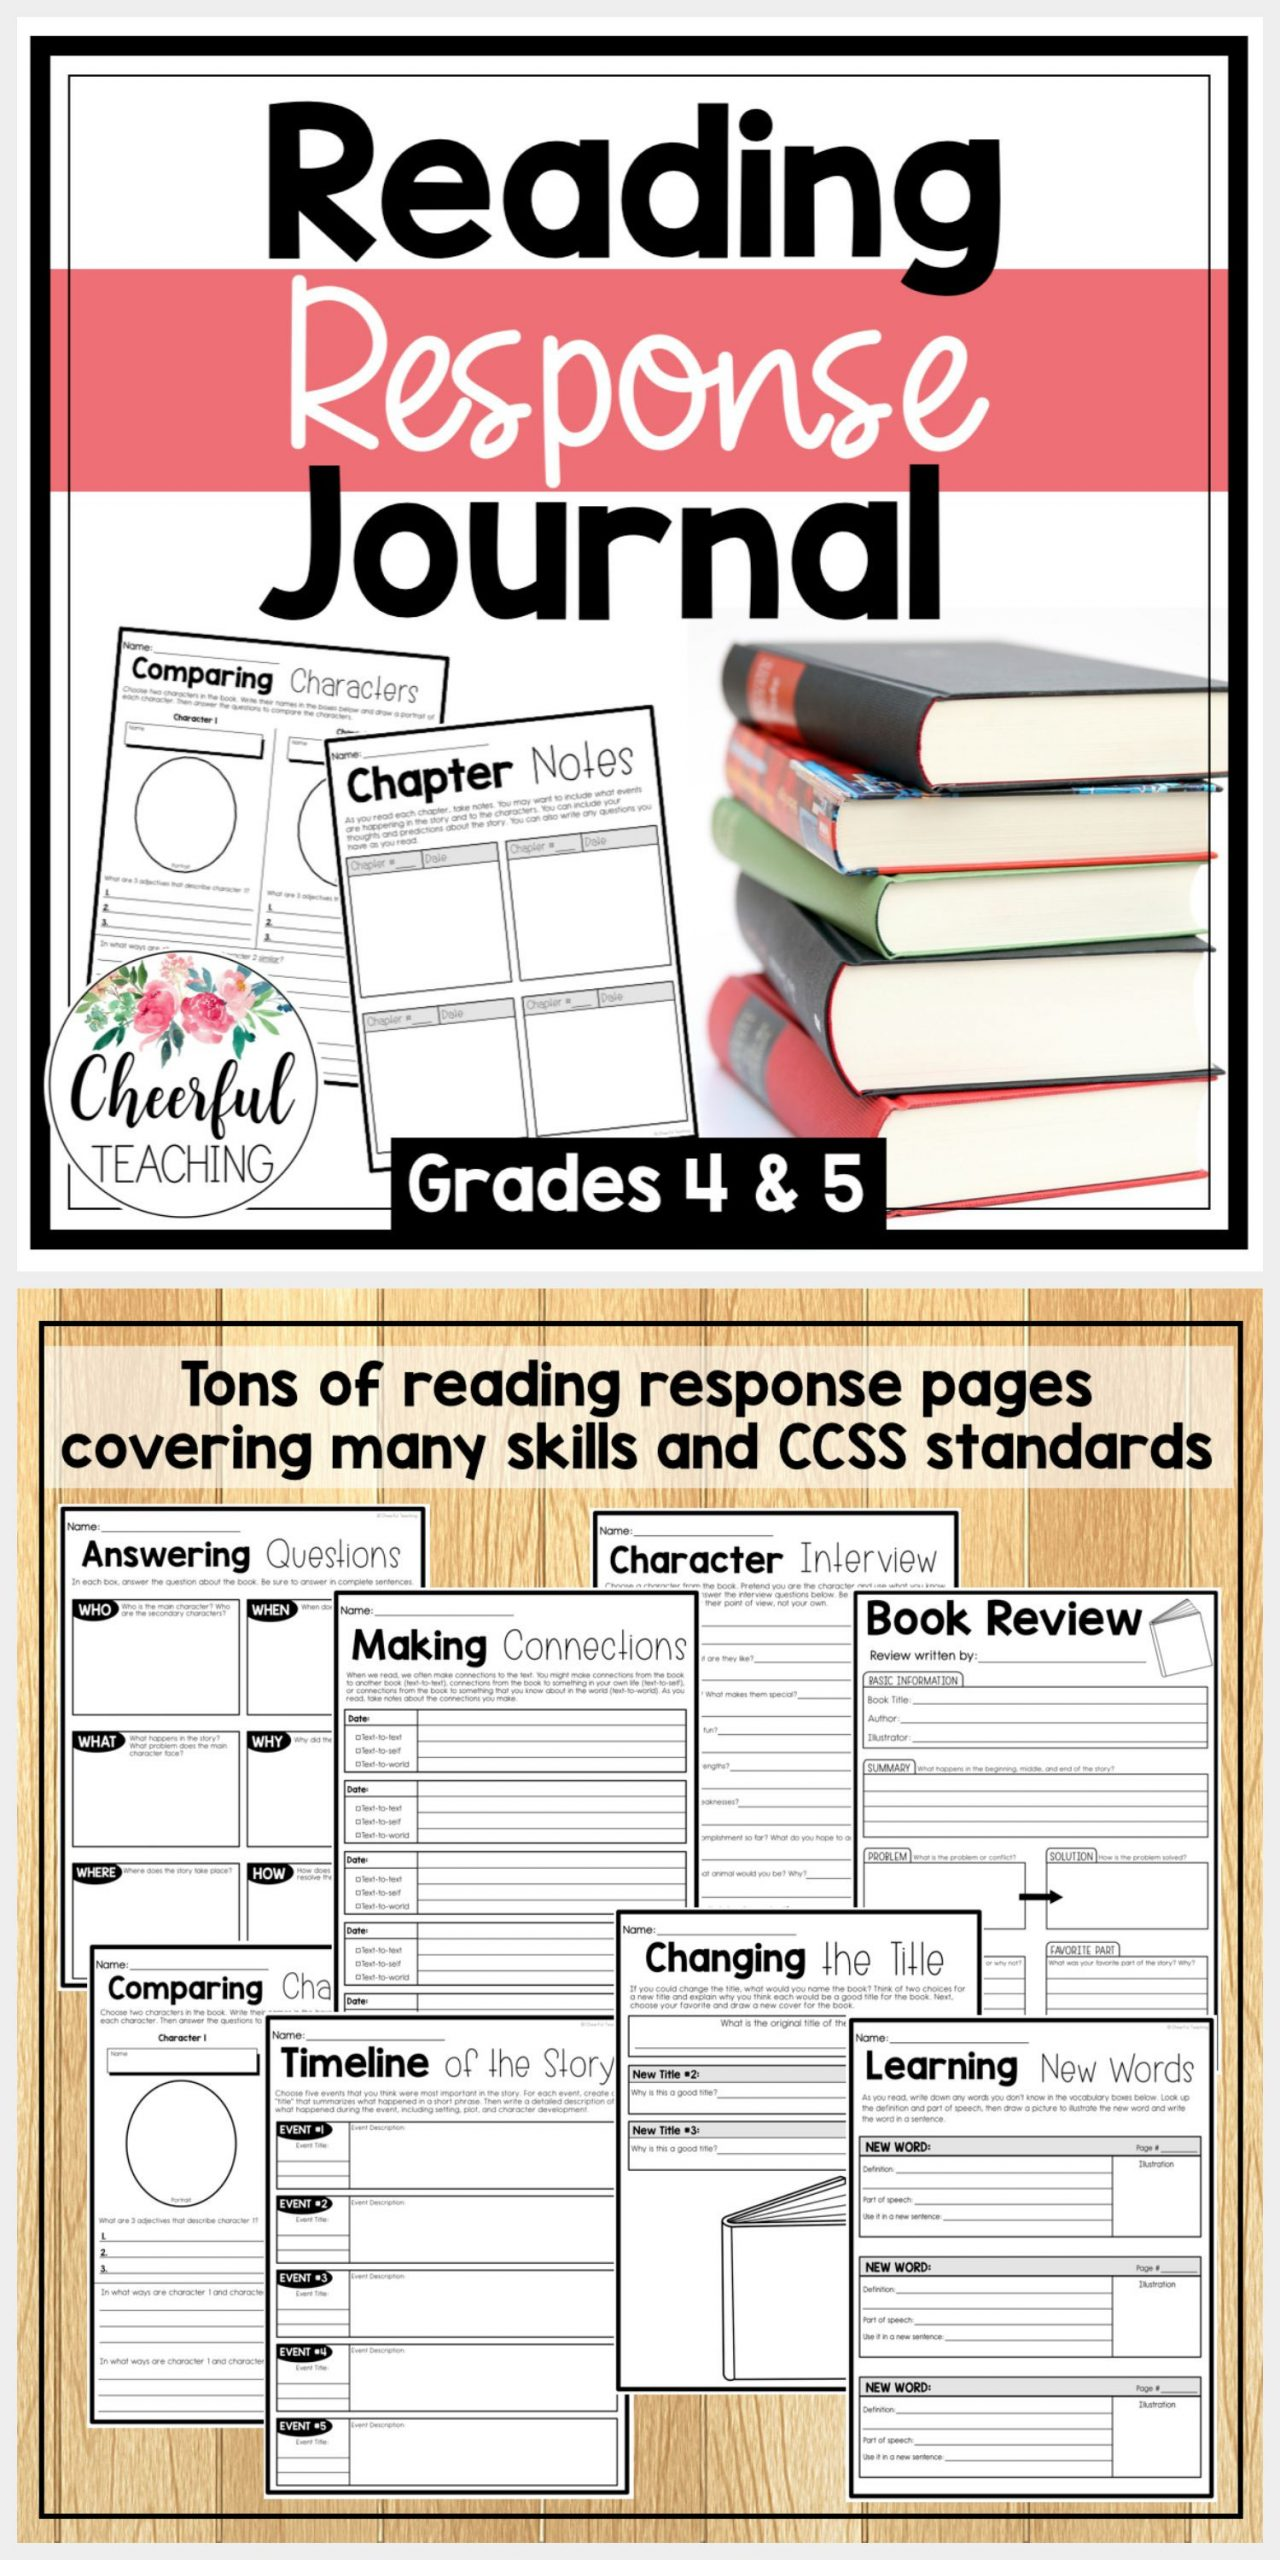 Reading and Responding Worksheets Reading Response Journal for Grades 4 5 Includes tons Of